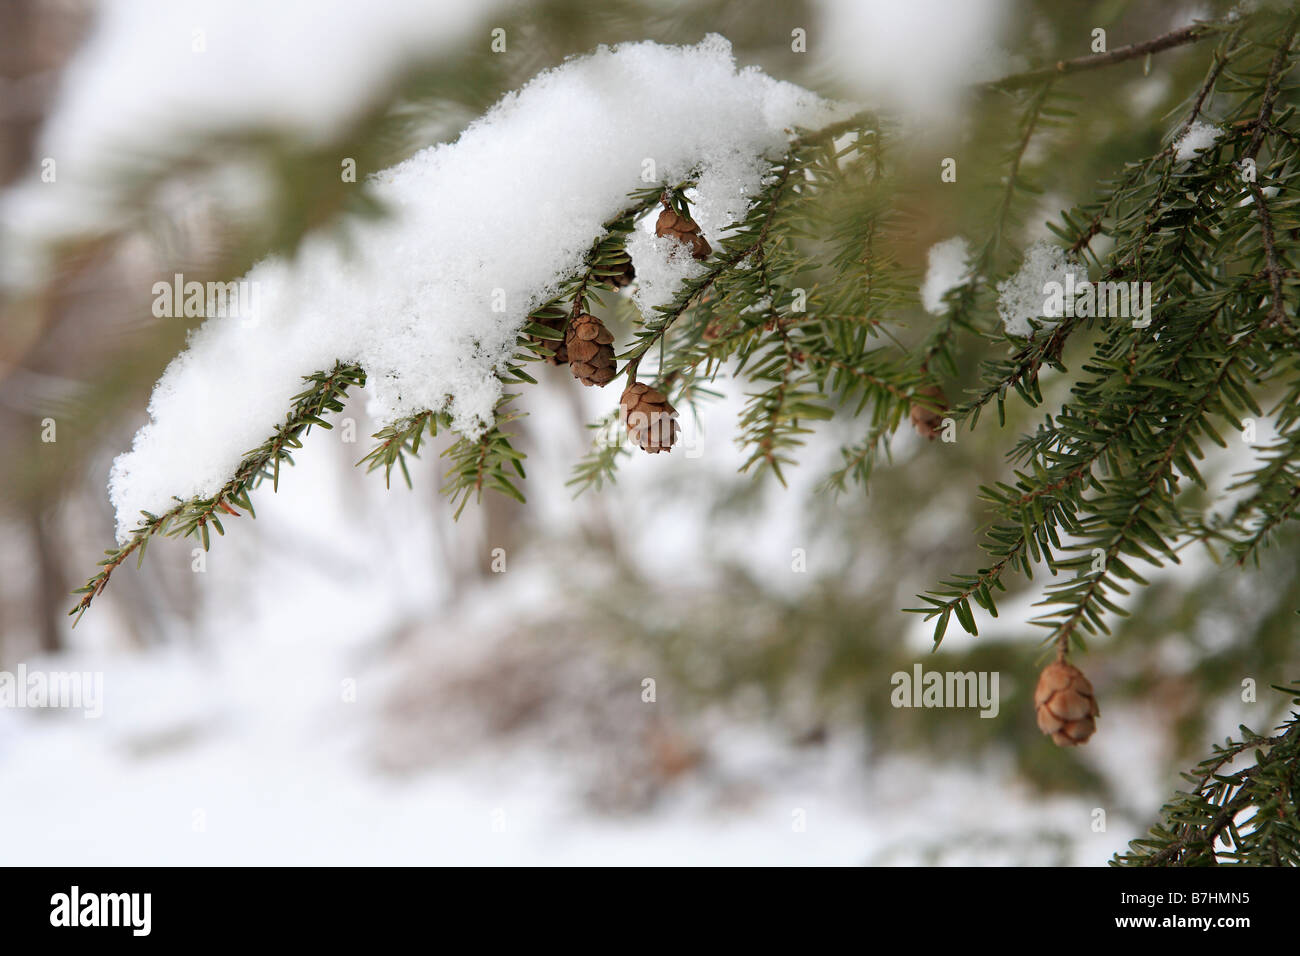 Little Pine Cone On Snow Covered Pine Tree Stock Photo Alamy